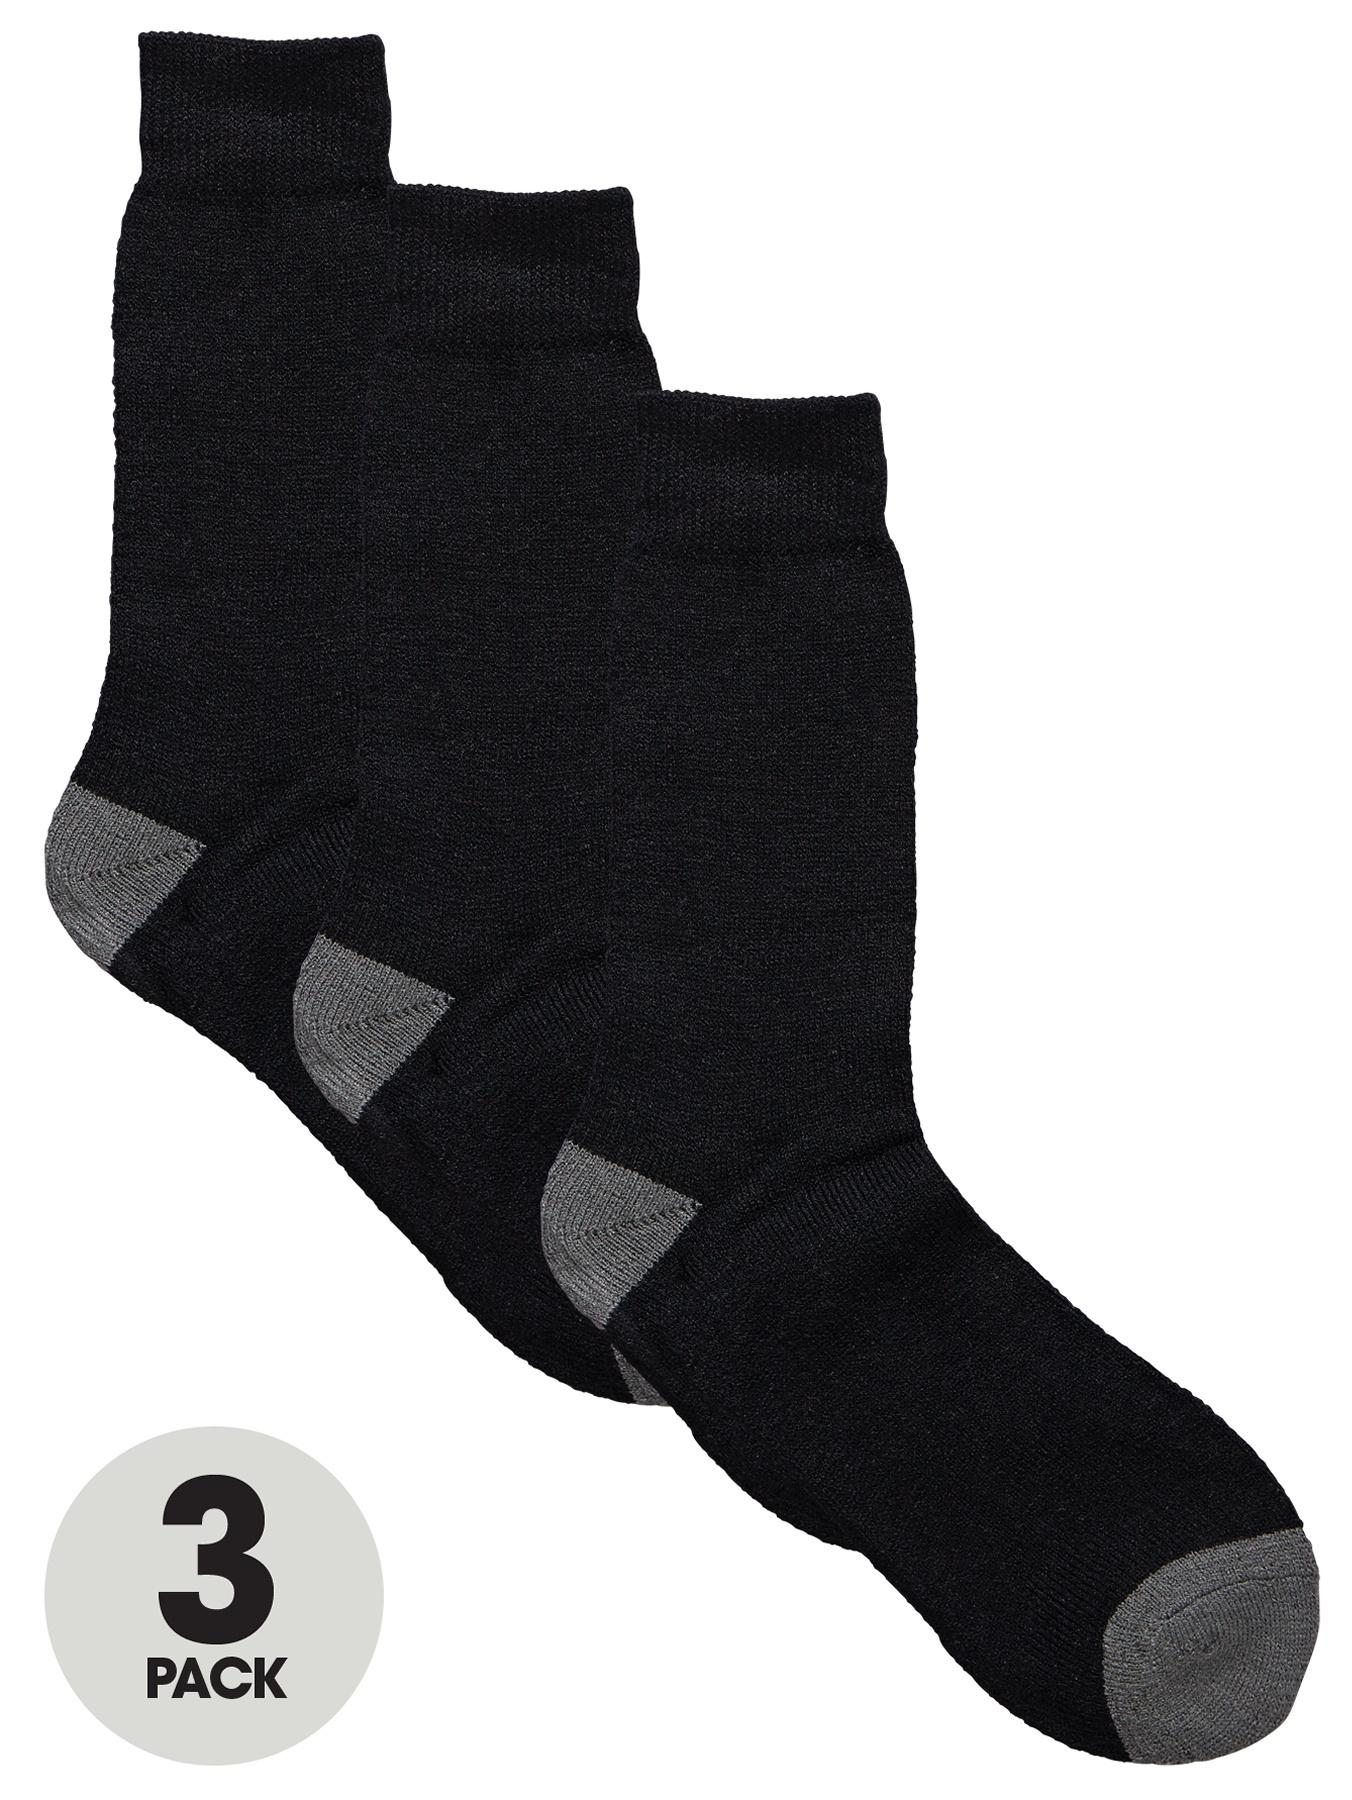 Blackrock Mens Workman Socks (3 Pack) - Black, Black